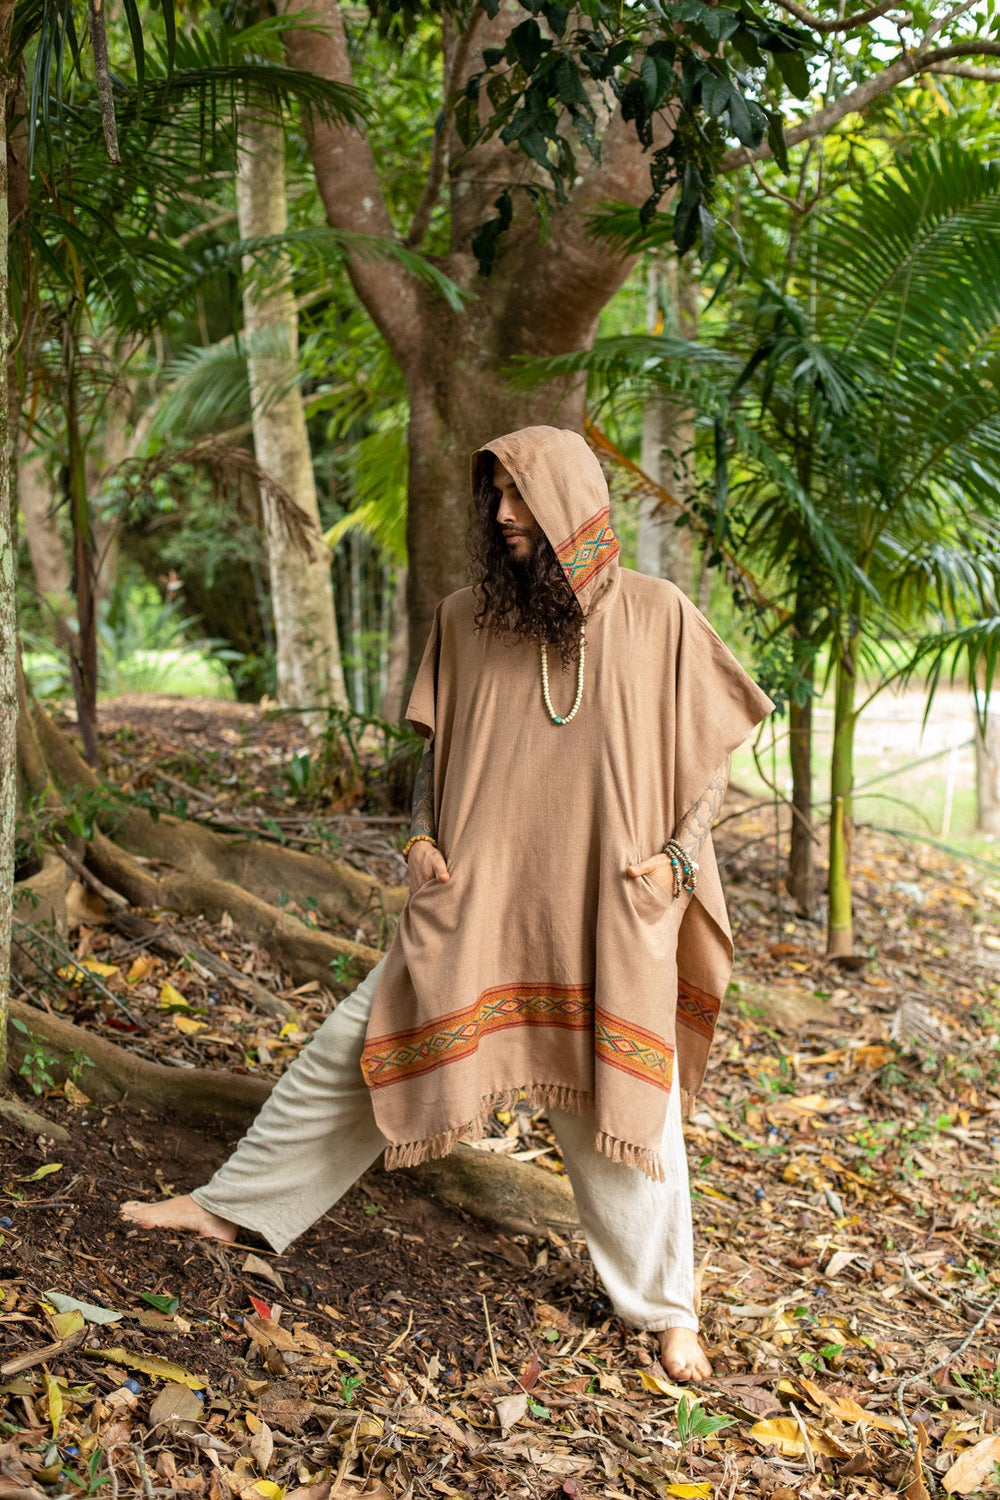 UPEKKHA Brown Mens Hooded Poncho Long Cashmere Wool with Tribal Embroidery, Large Hood, Pockets, Hippie, Primitive, Gypsy, Boho, AJJAYA